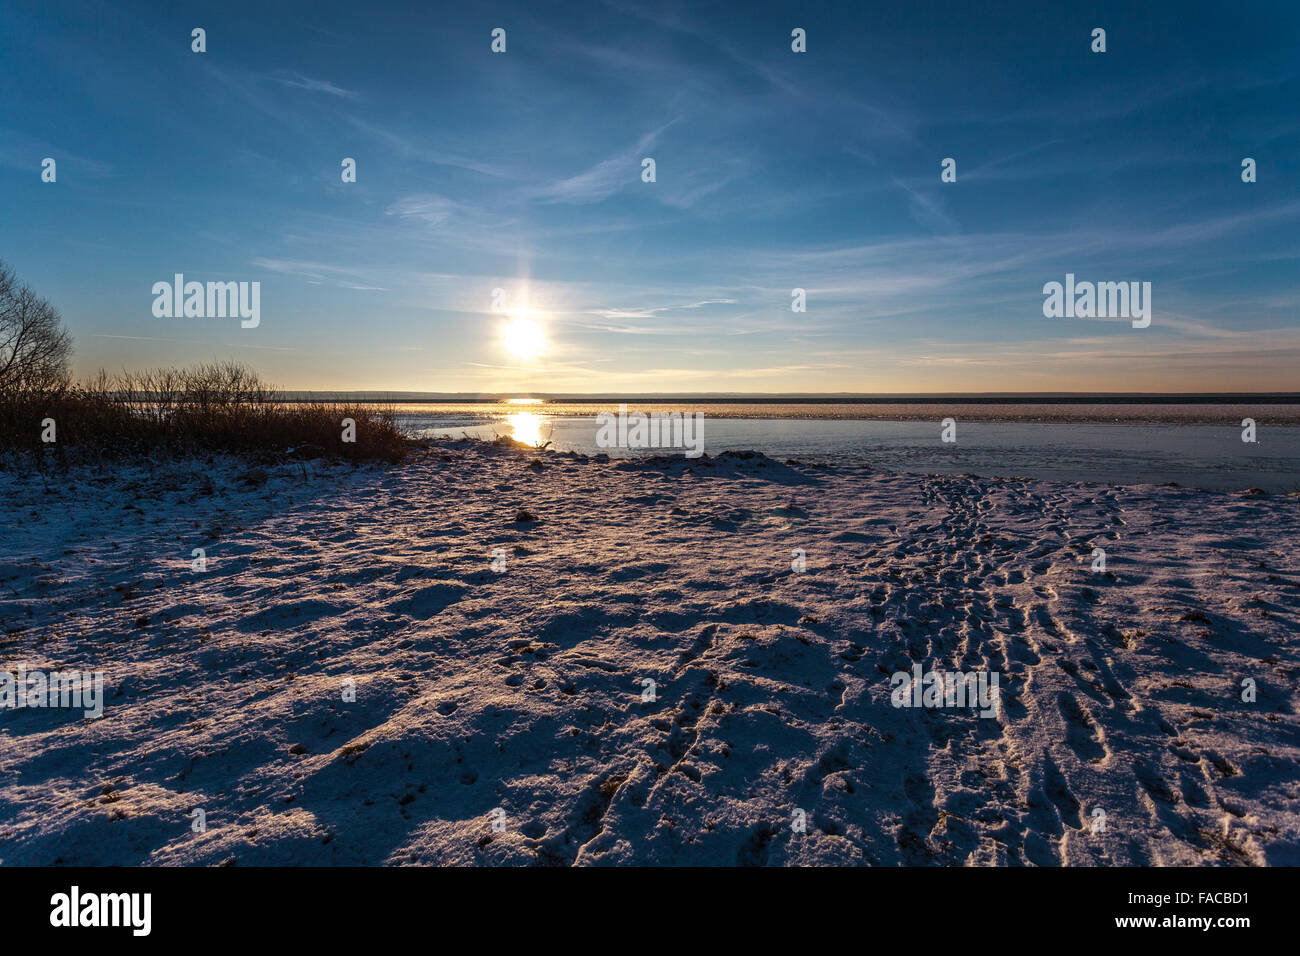 The sun concerns the horizon on the winter coast, being reflected from snow, water and ice. - Stock Image